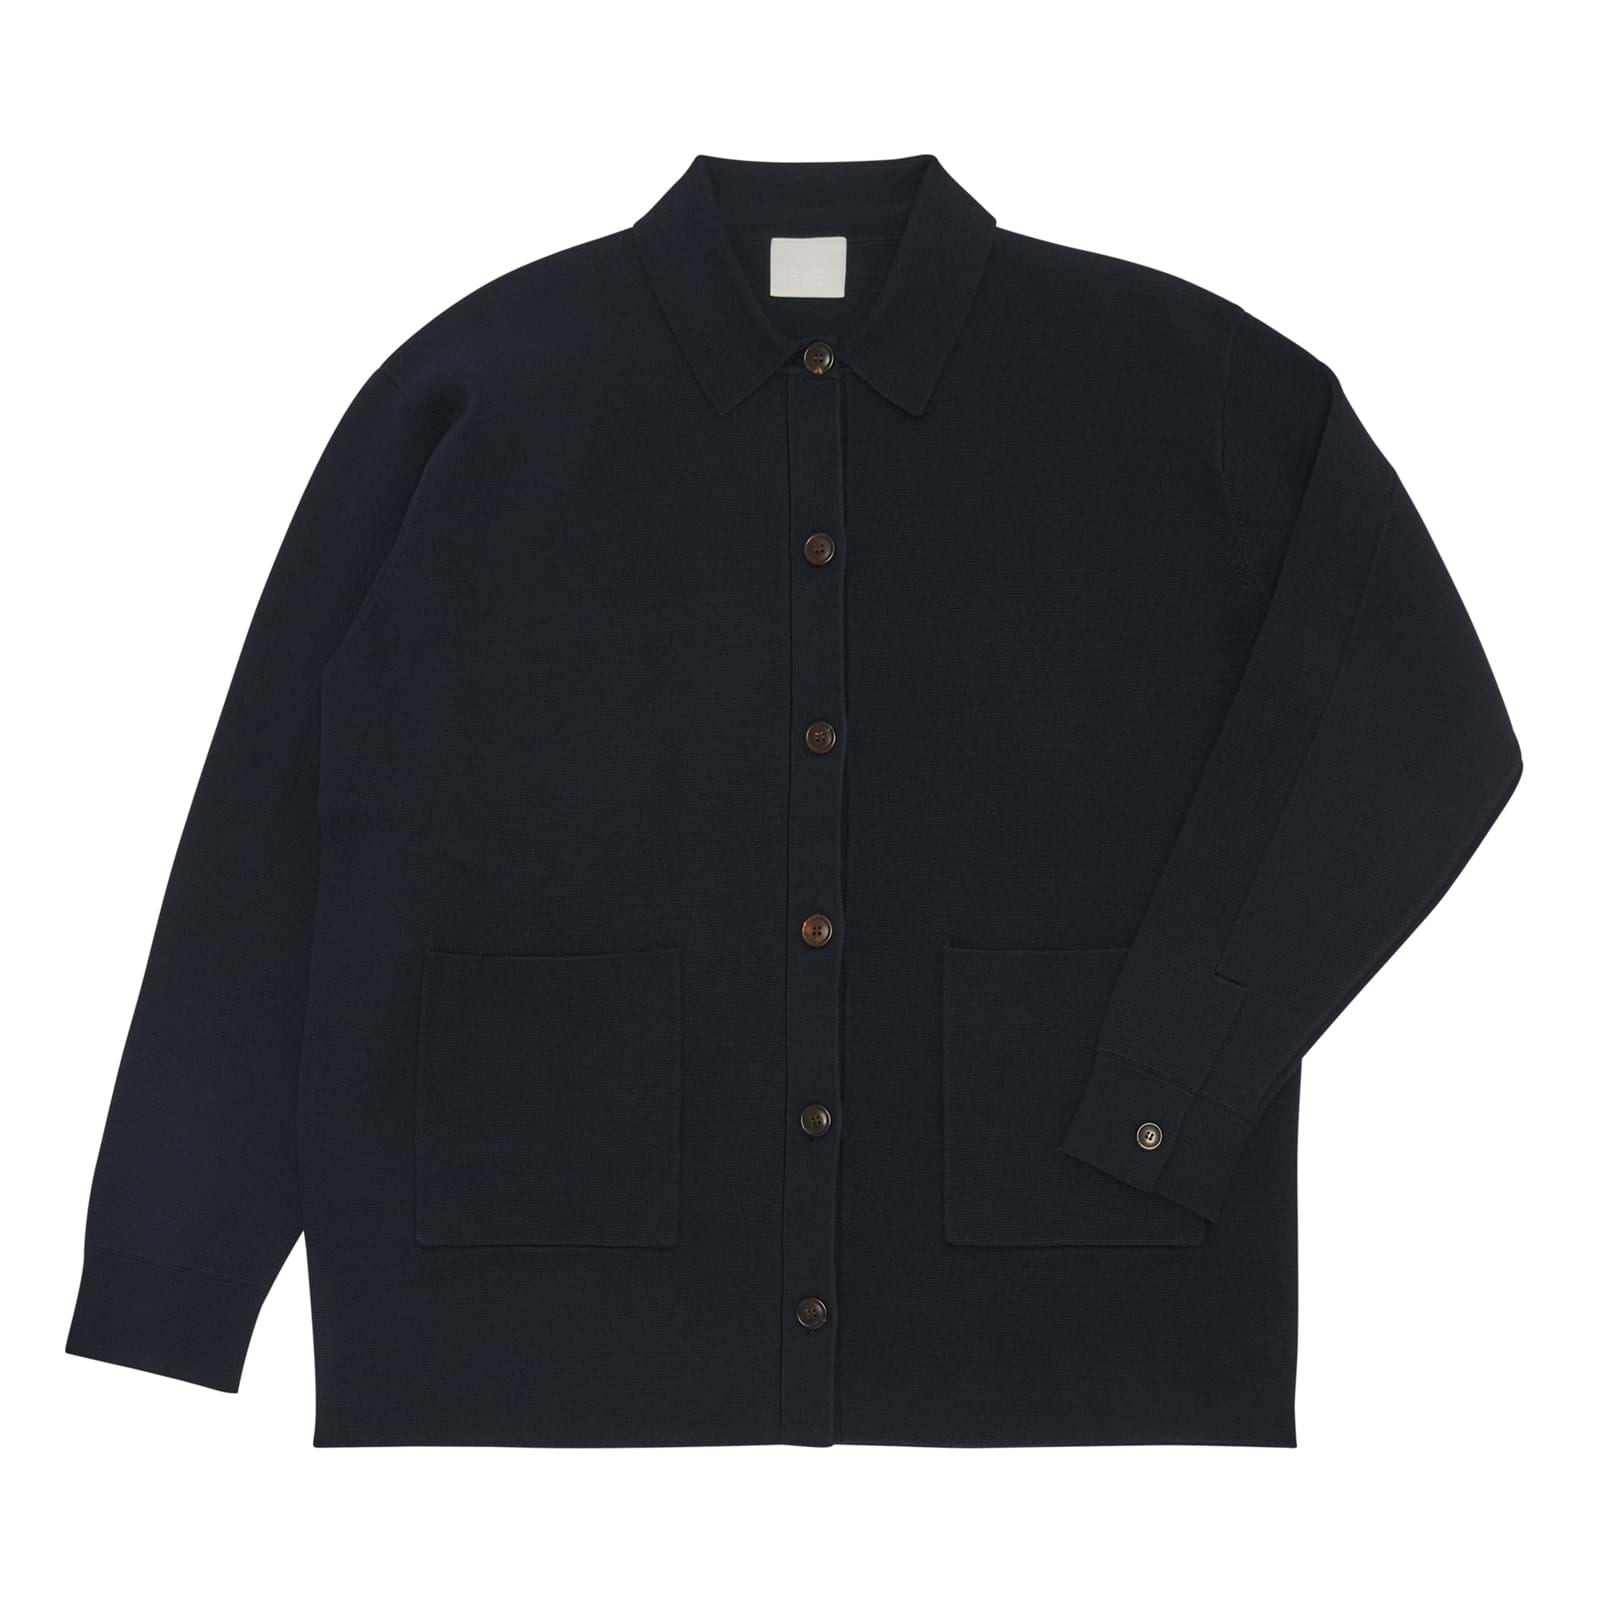 FUB - SUMMER WORKER JACKET